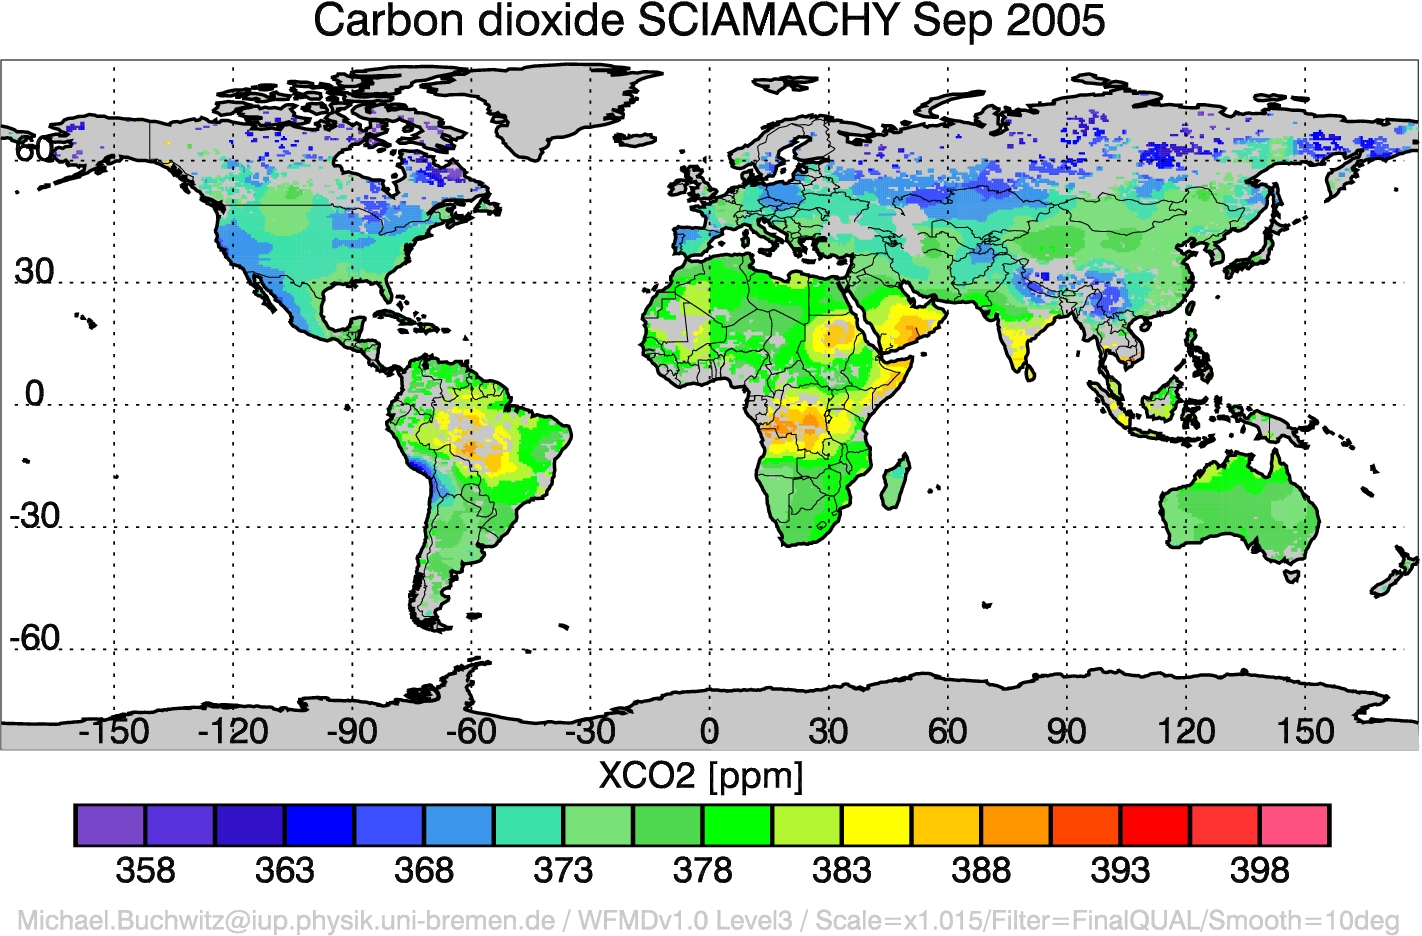 CO2 from SCIAMACHY